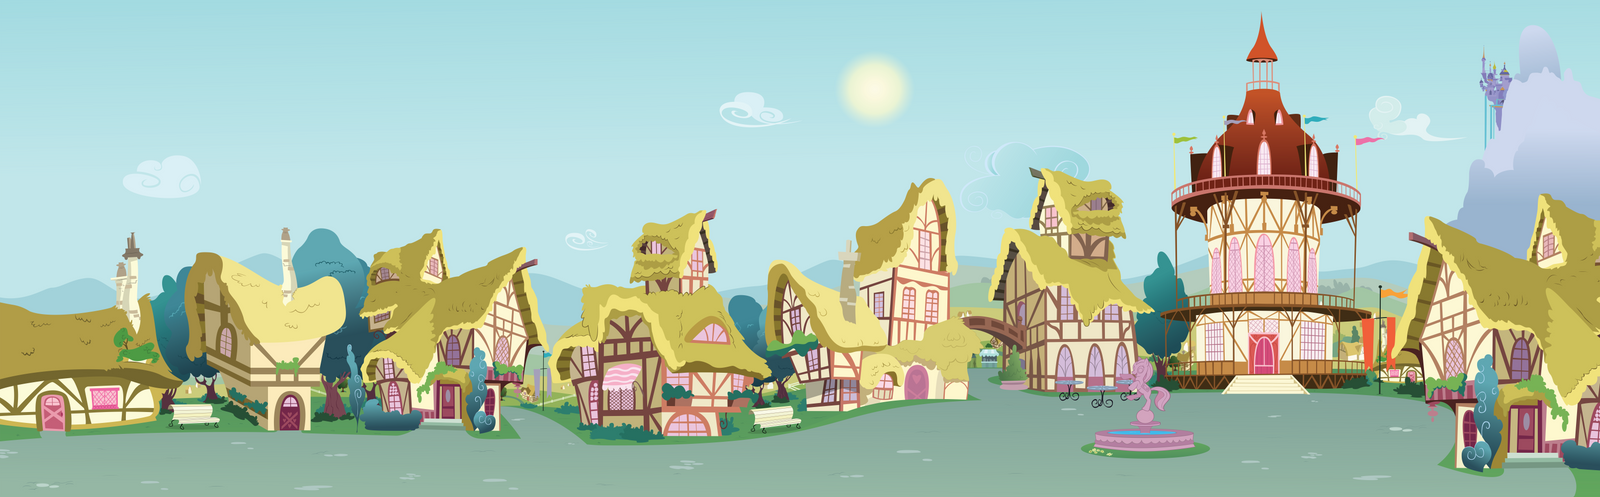 Ponyville Street to Town Center by BonesWolbach